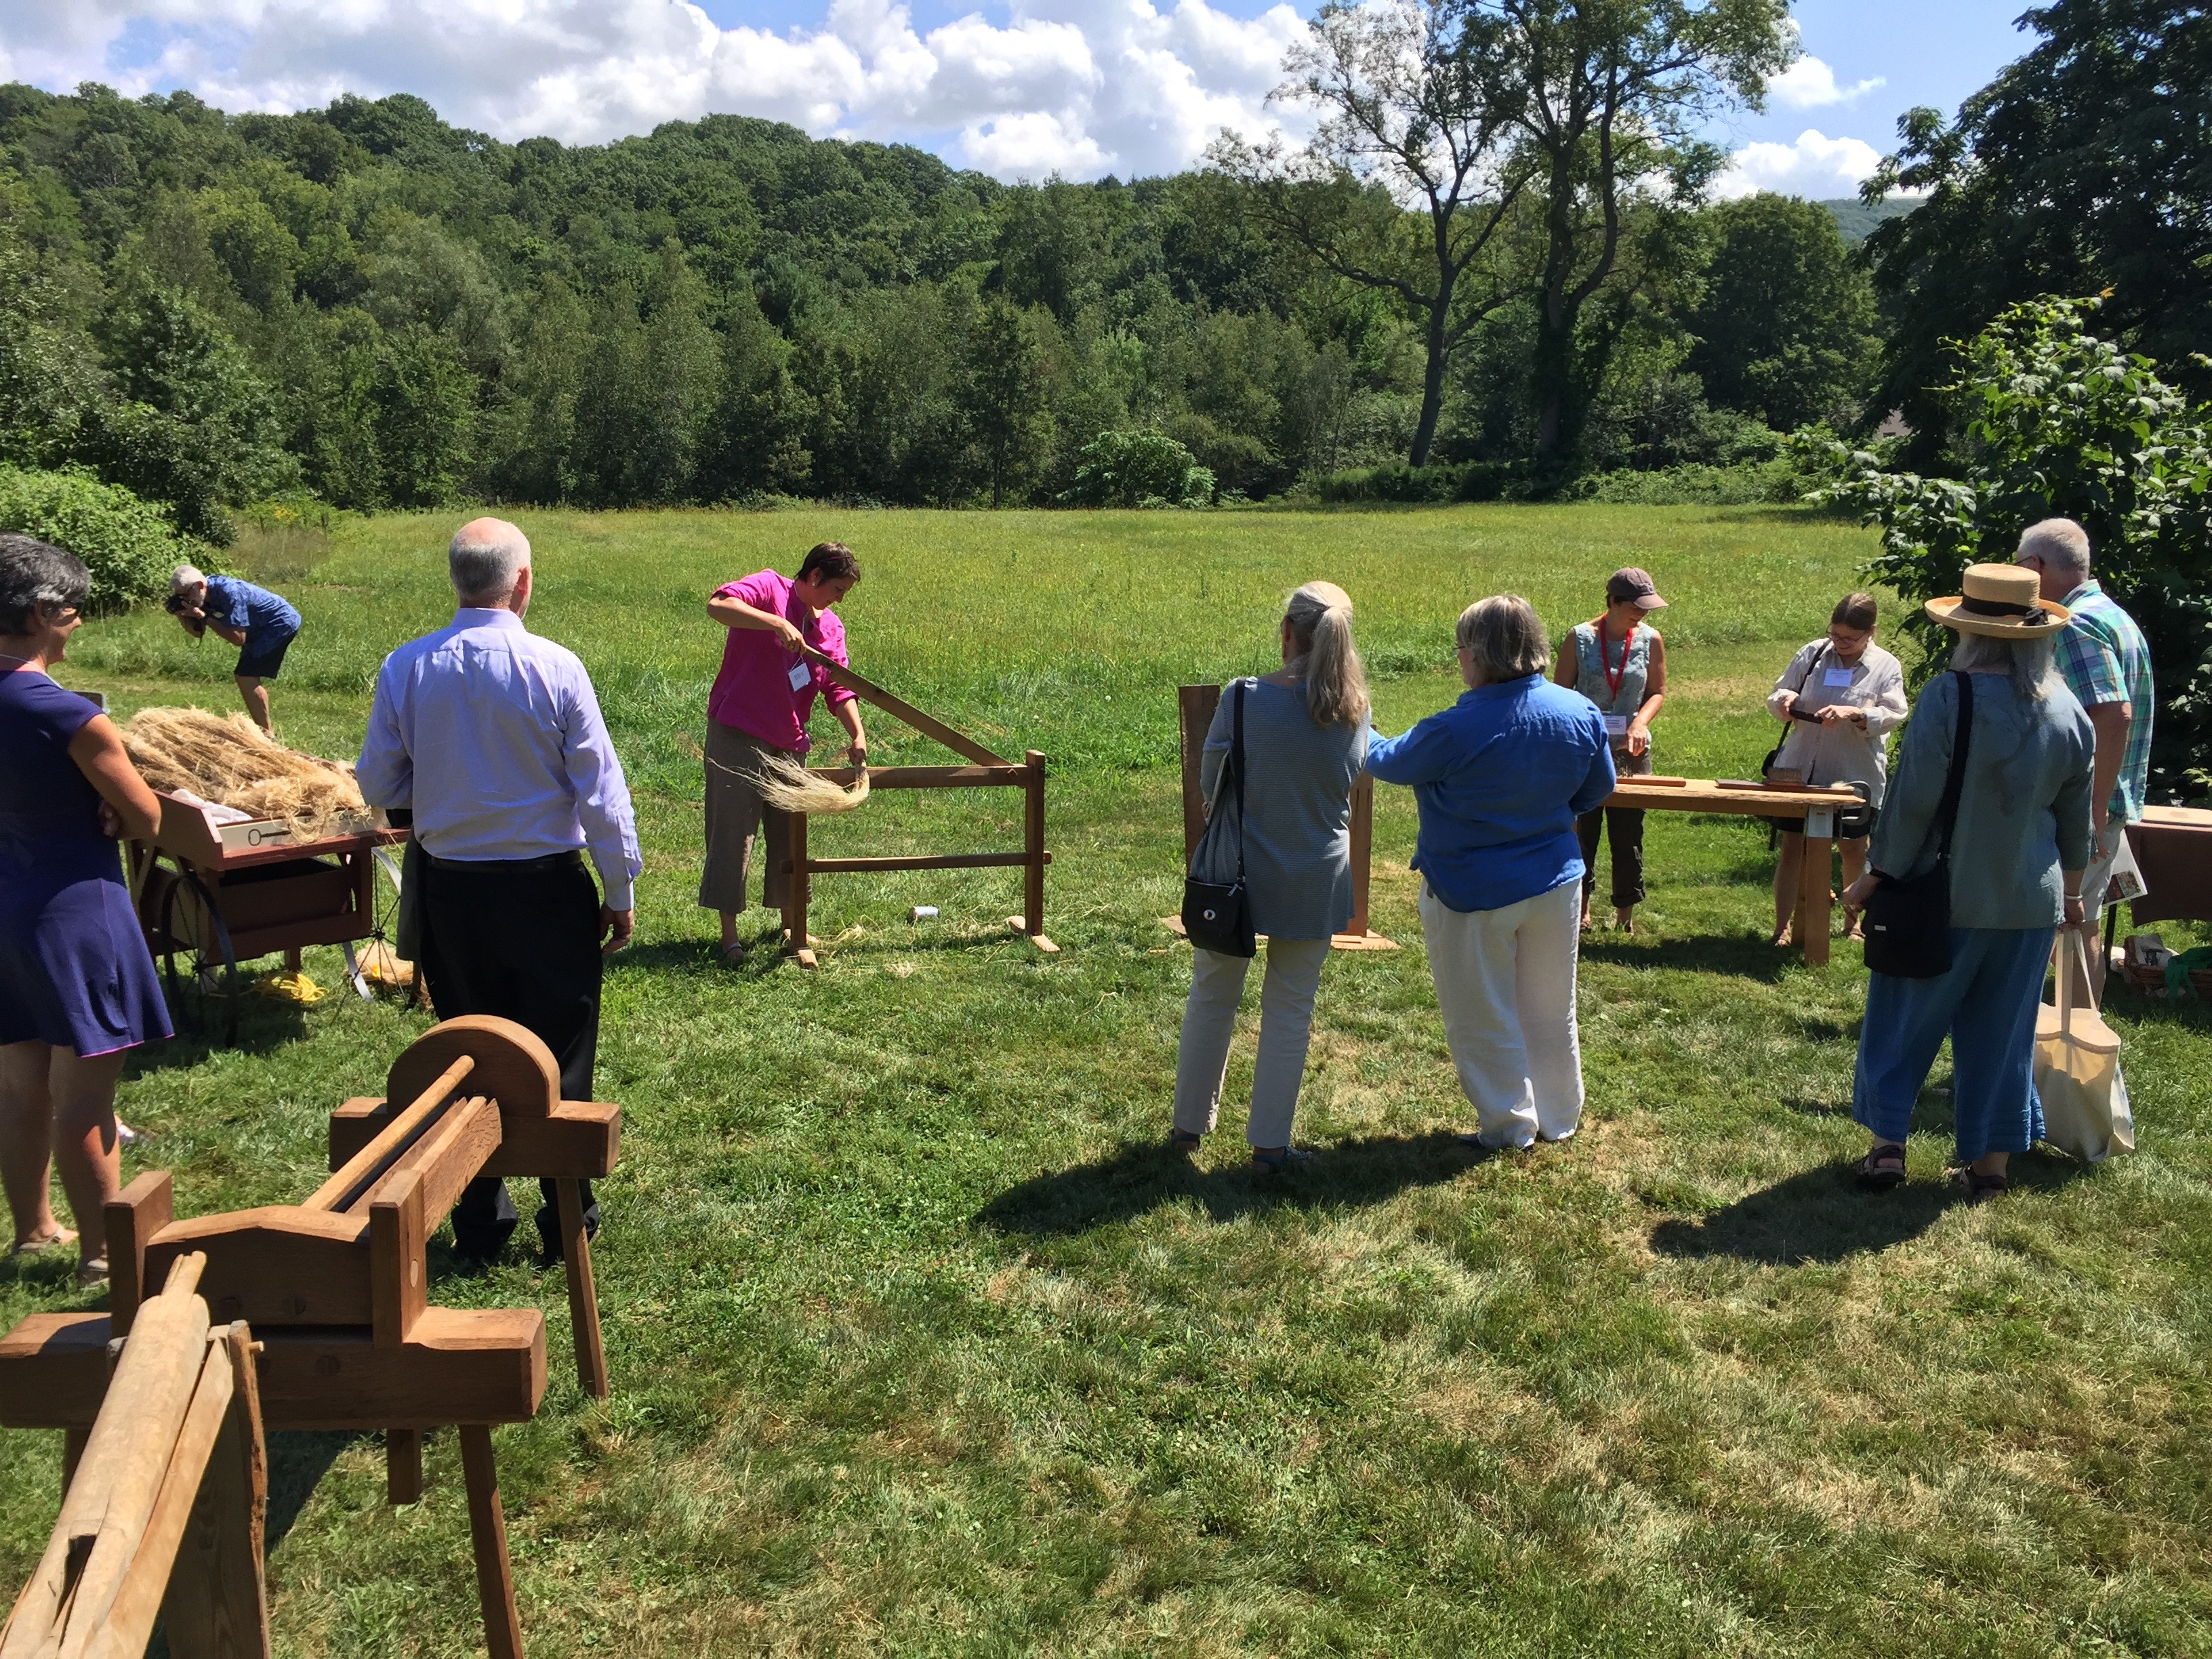 Photo of participants trying antique flax processing tools at the Flax & Linen Symposium 2016